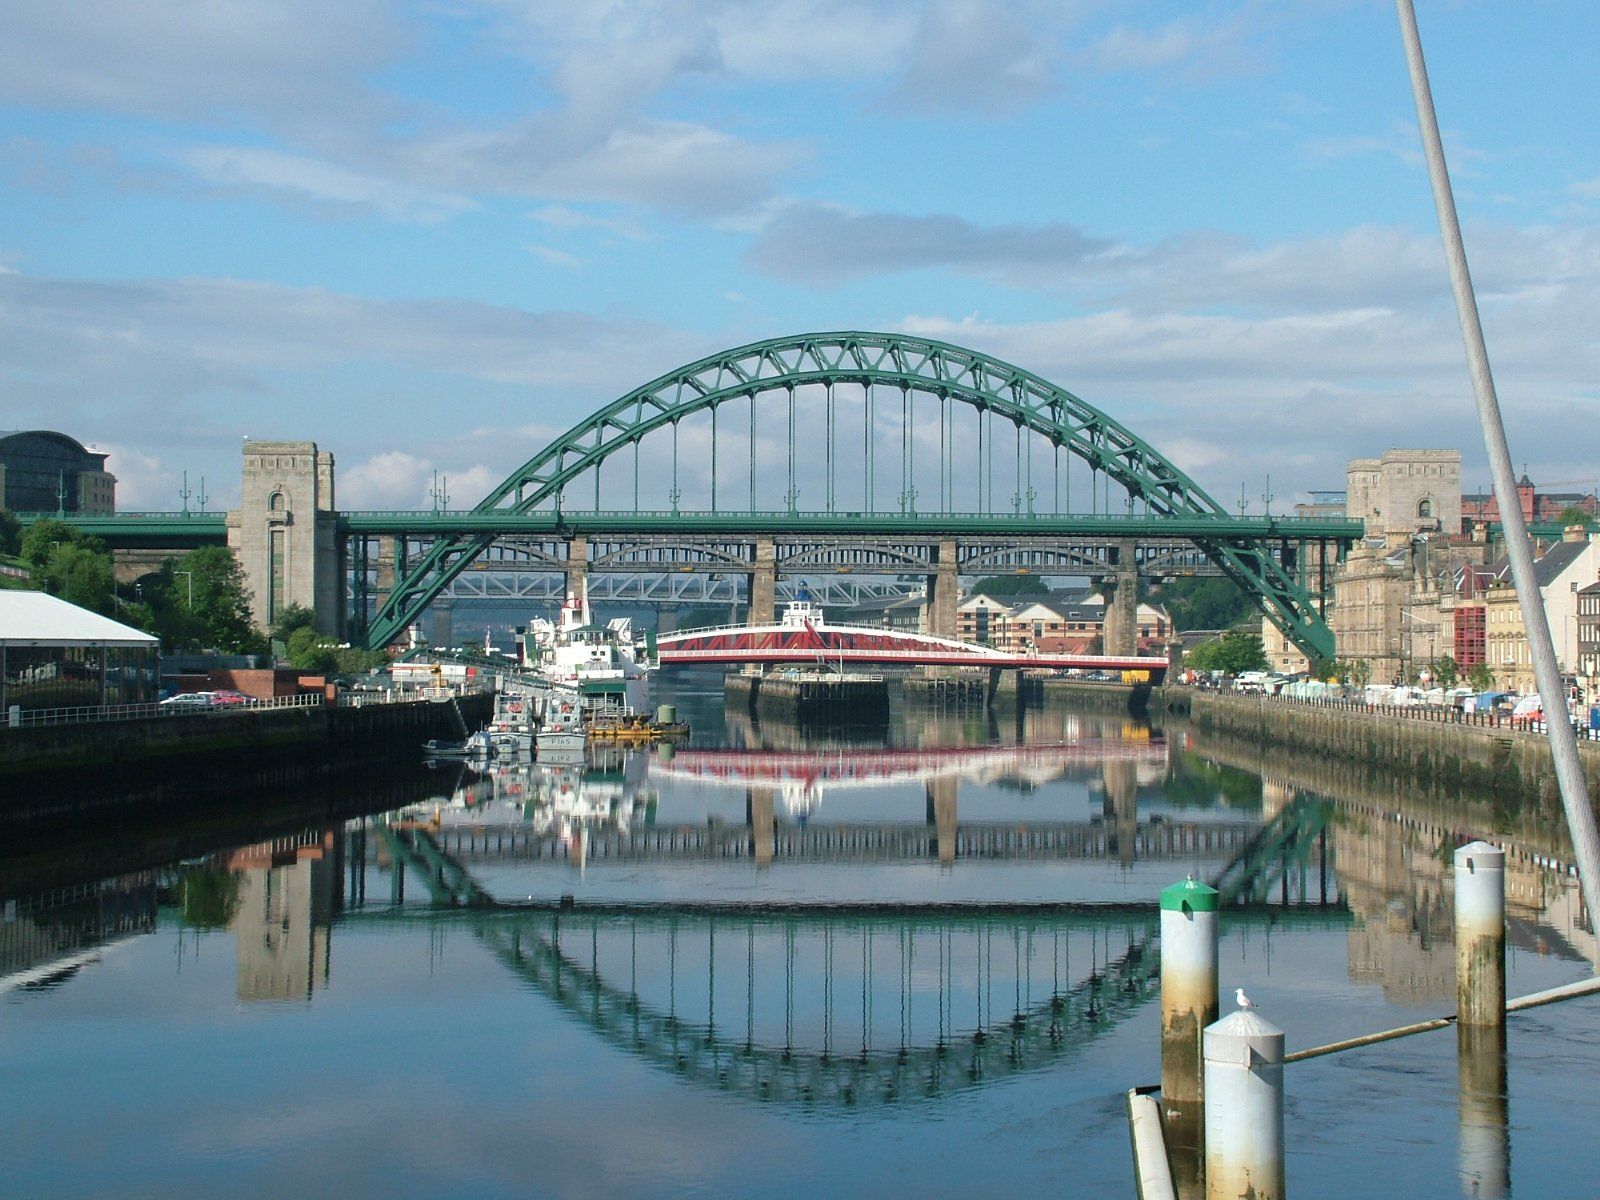 Newcastle: Most BEAUTIFUL Bridges In The World